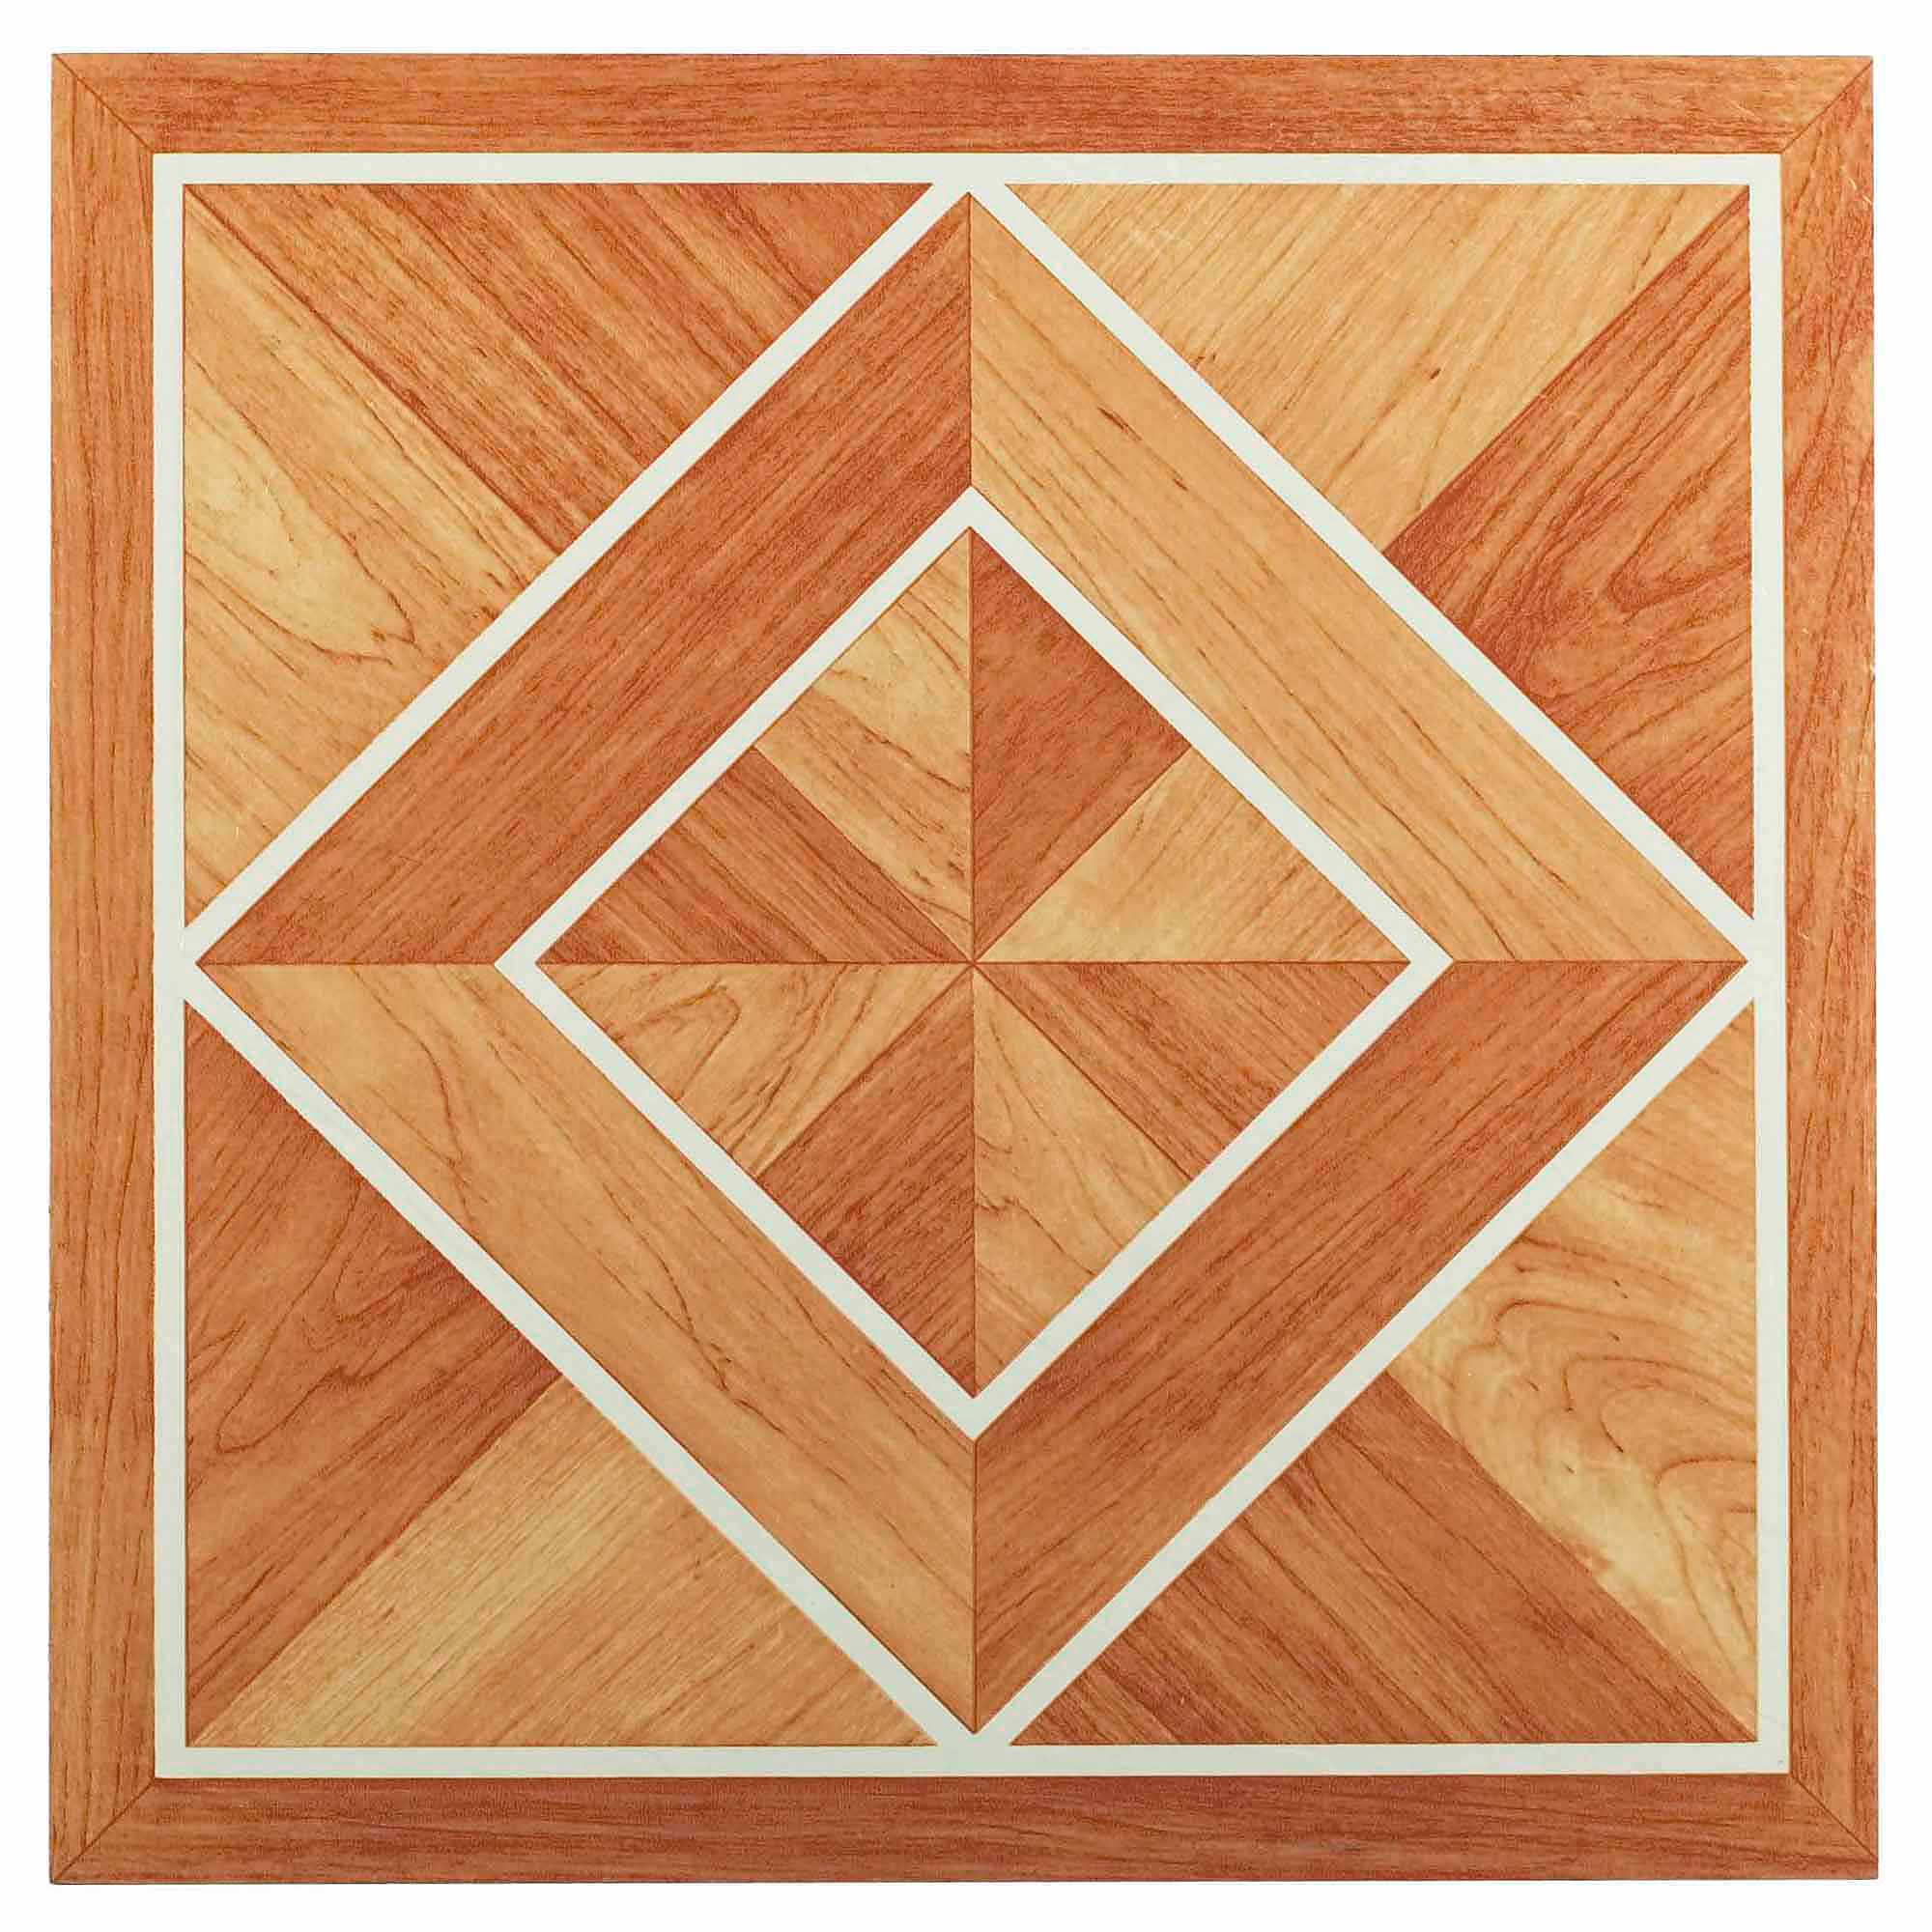 NEXUS White Border Classic Inlaid Parquet 12x12 Inch Self Adhesive Vinyl Floor Tile - 20 Tiles/20 Sq.Ft.